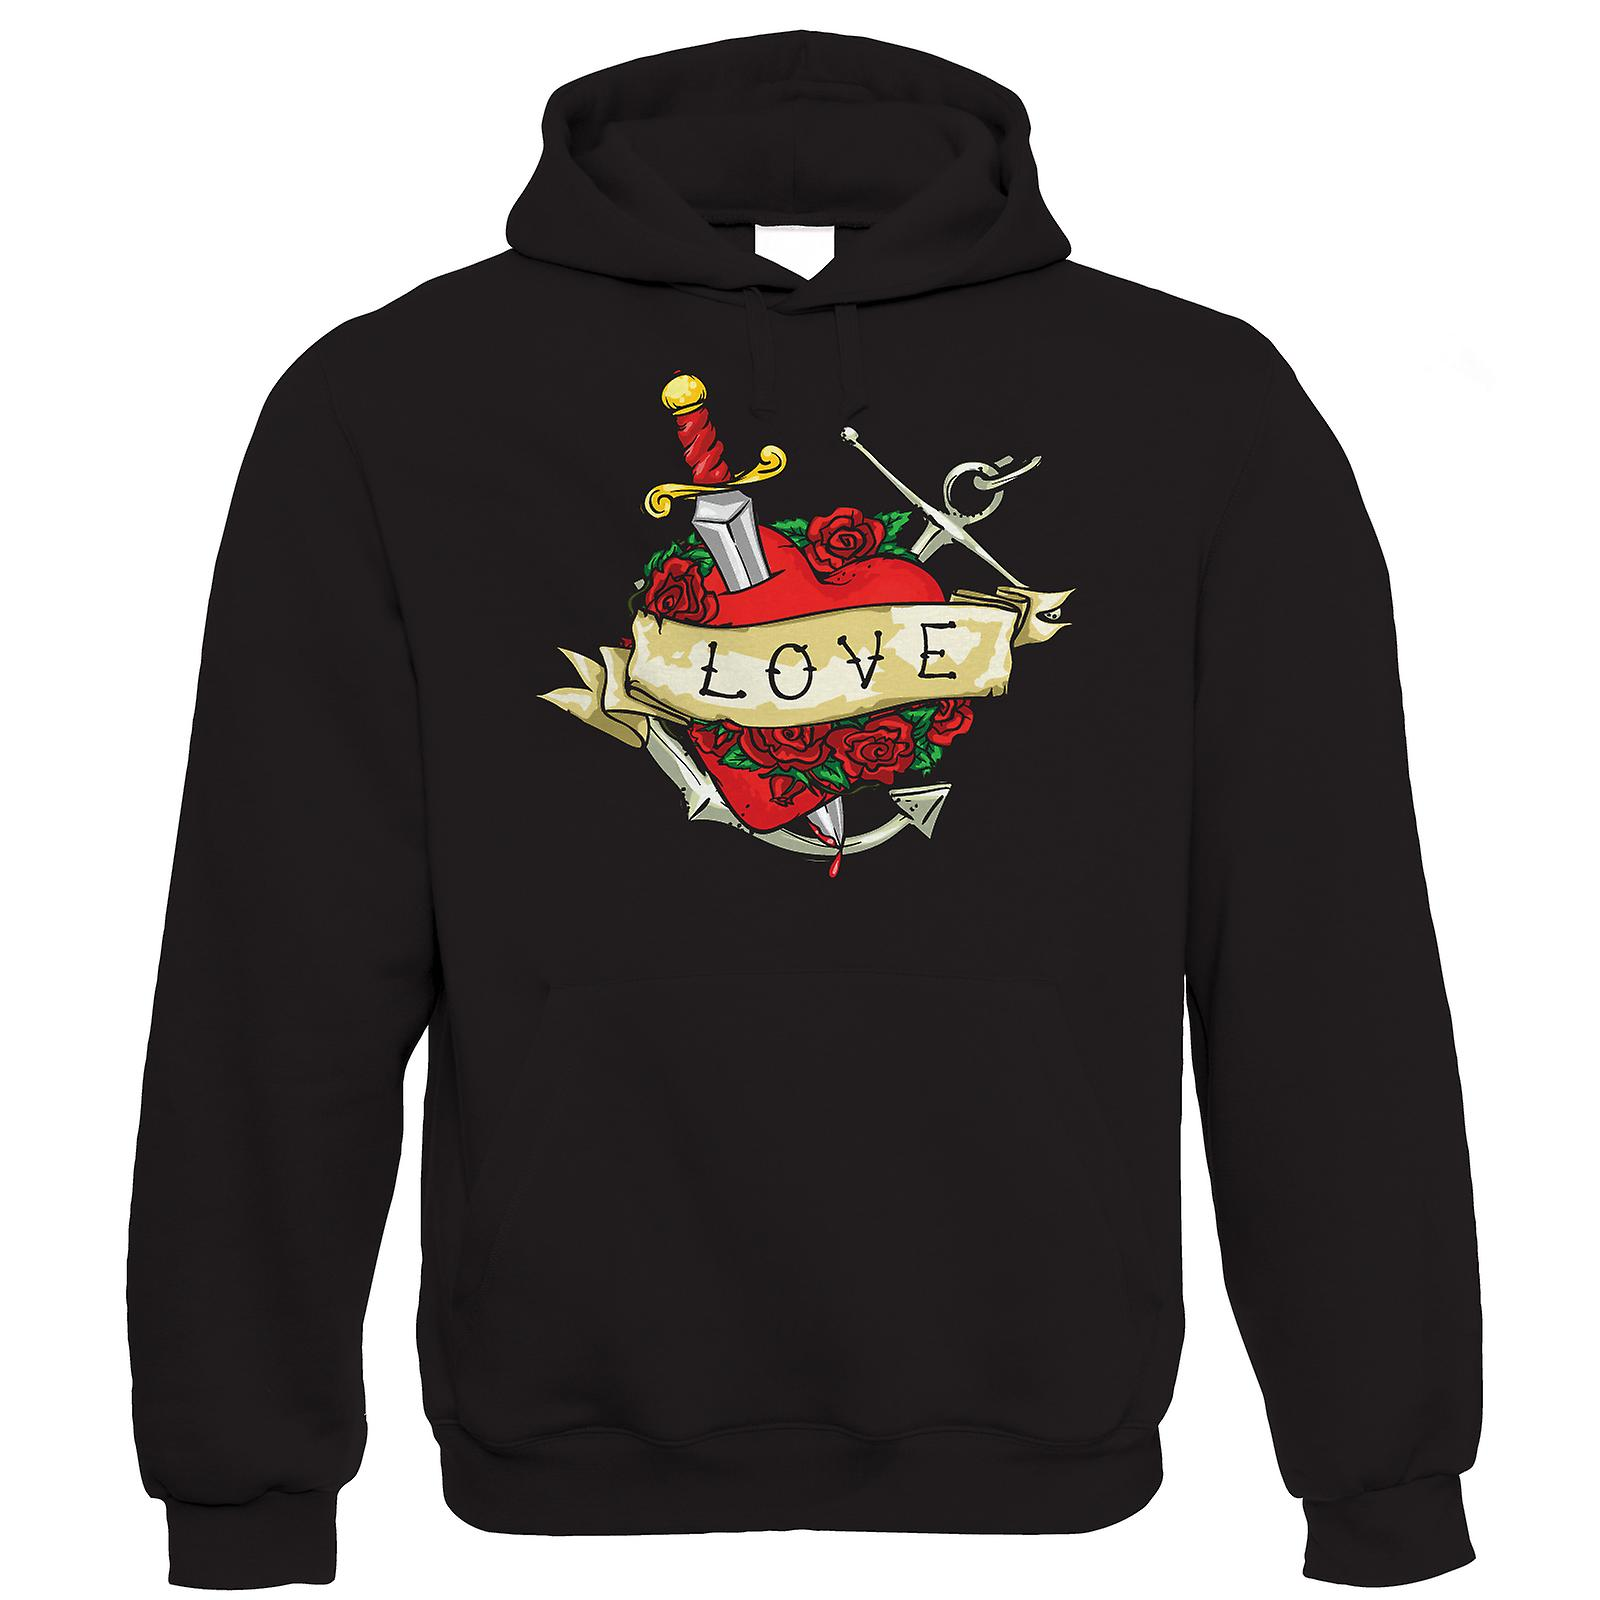 Tatto Love Heart Mens Hoodie (S to 5XL)